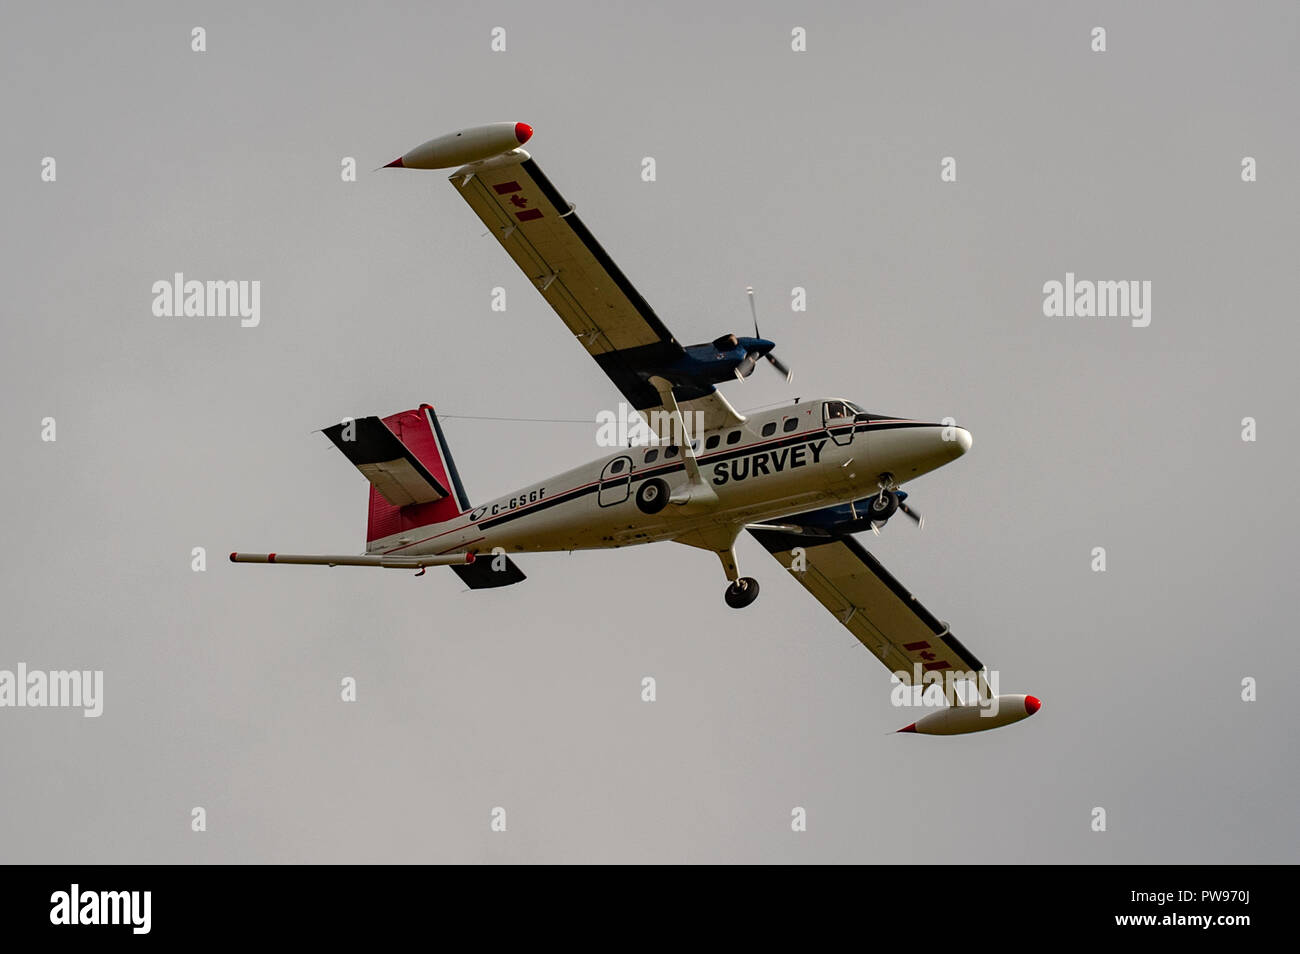 Ballydehob, West Cork, Ireland. 14th Oct, 2018. De Havilland DHC-6-300 Twin Otter survery aircraft registration C-GSGF makes a pass over Scrahanaleara for the fourth time this morning whilst performing a geoscience mapping programme.  The aircraft is owned by Sander Geophysics, which is based in Canada. Credit: Andy Gibson/Alamy Live News. - Stock Image